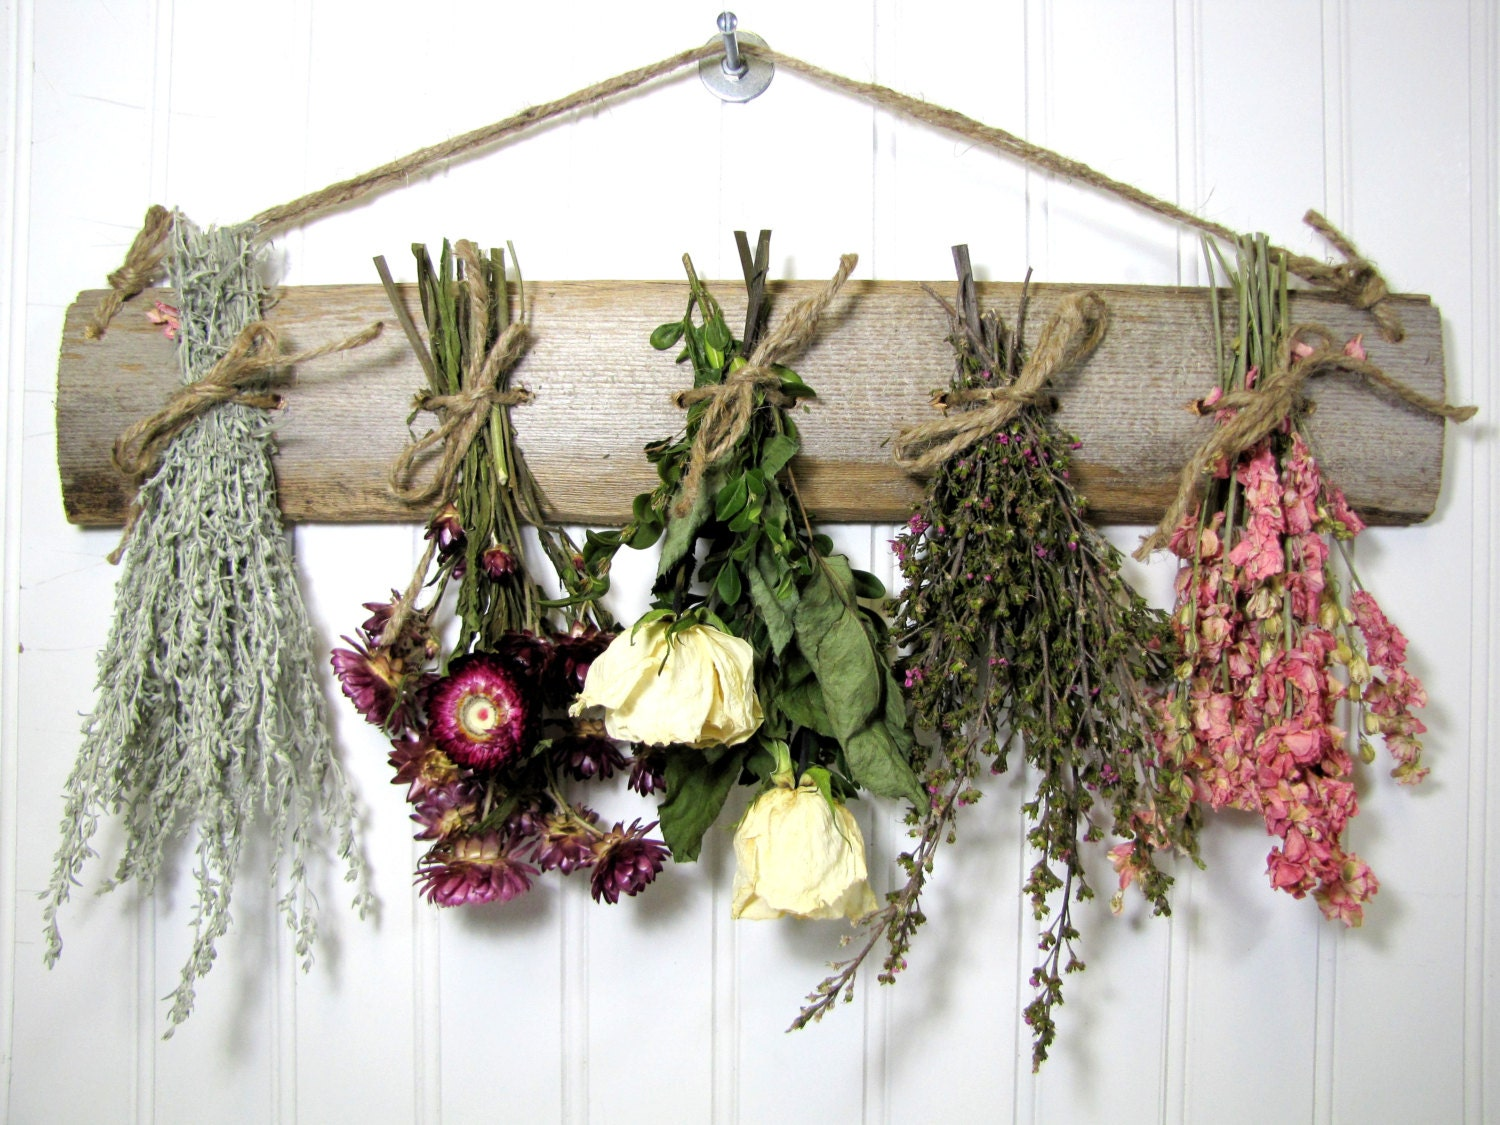 Dried flower rack dried floral arrangement wall decor dried - Best dried flower arrangements a colorful winter ...